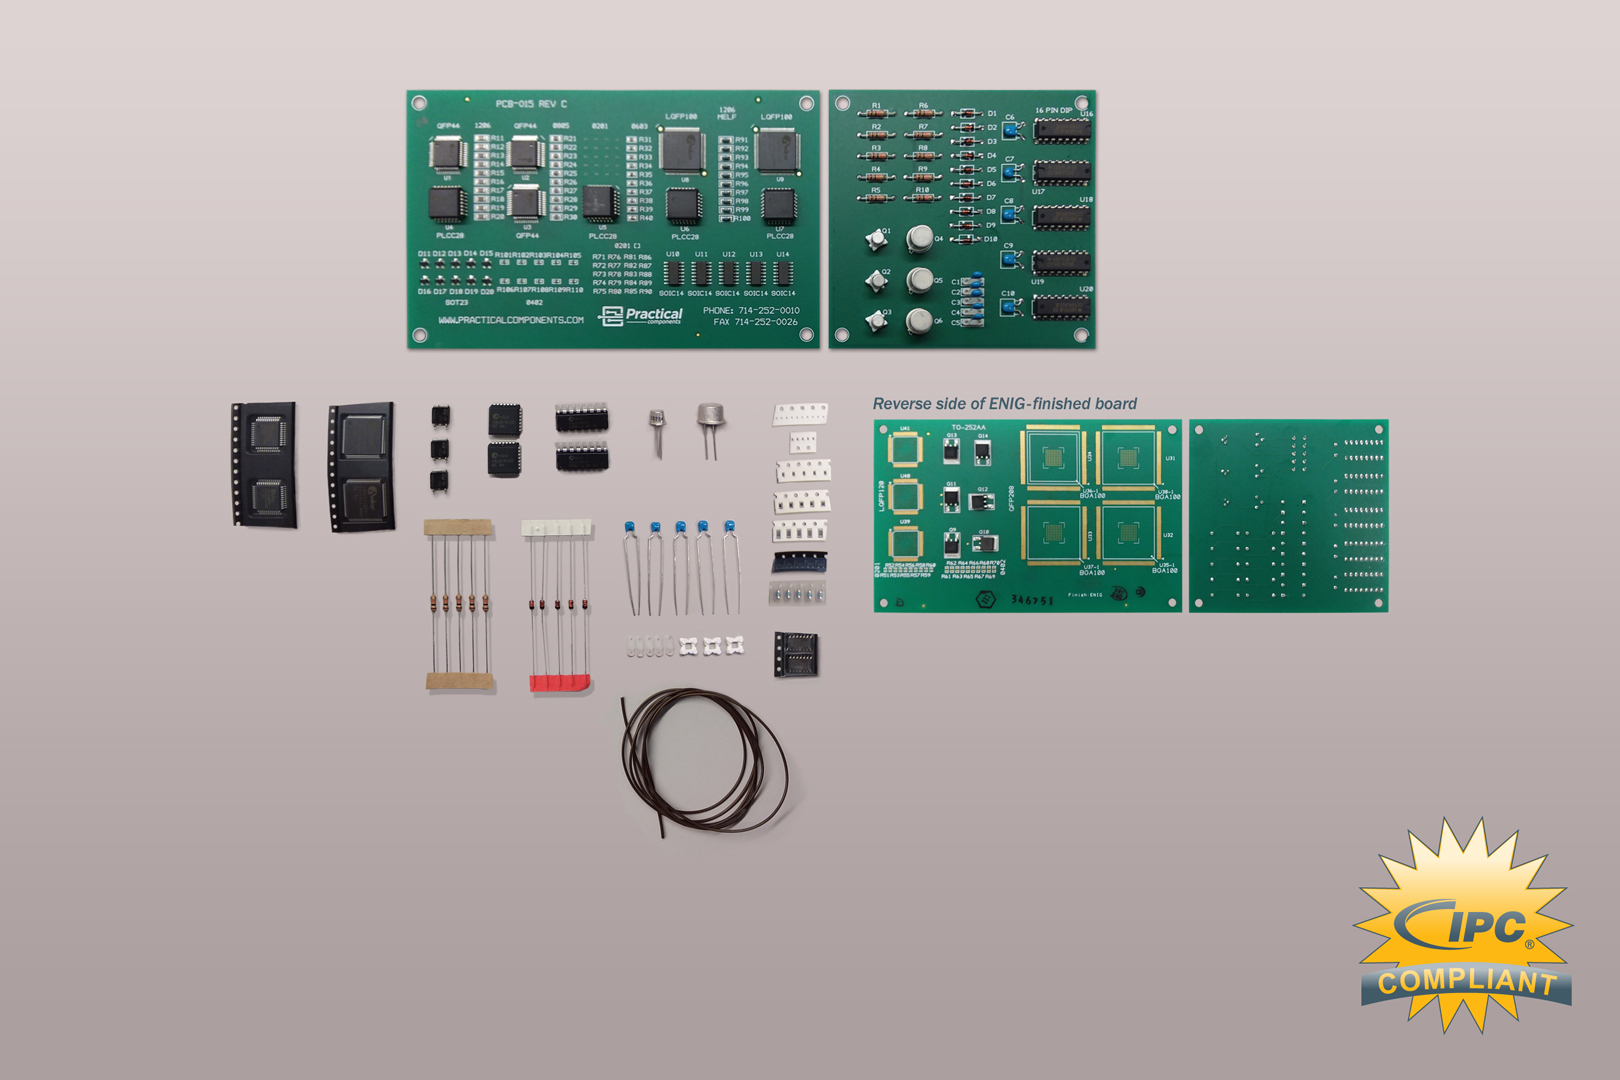 IPC 7711/7721 - CIS/CIT - Recertification Solder Training Kit (ENIG)